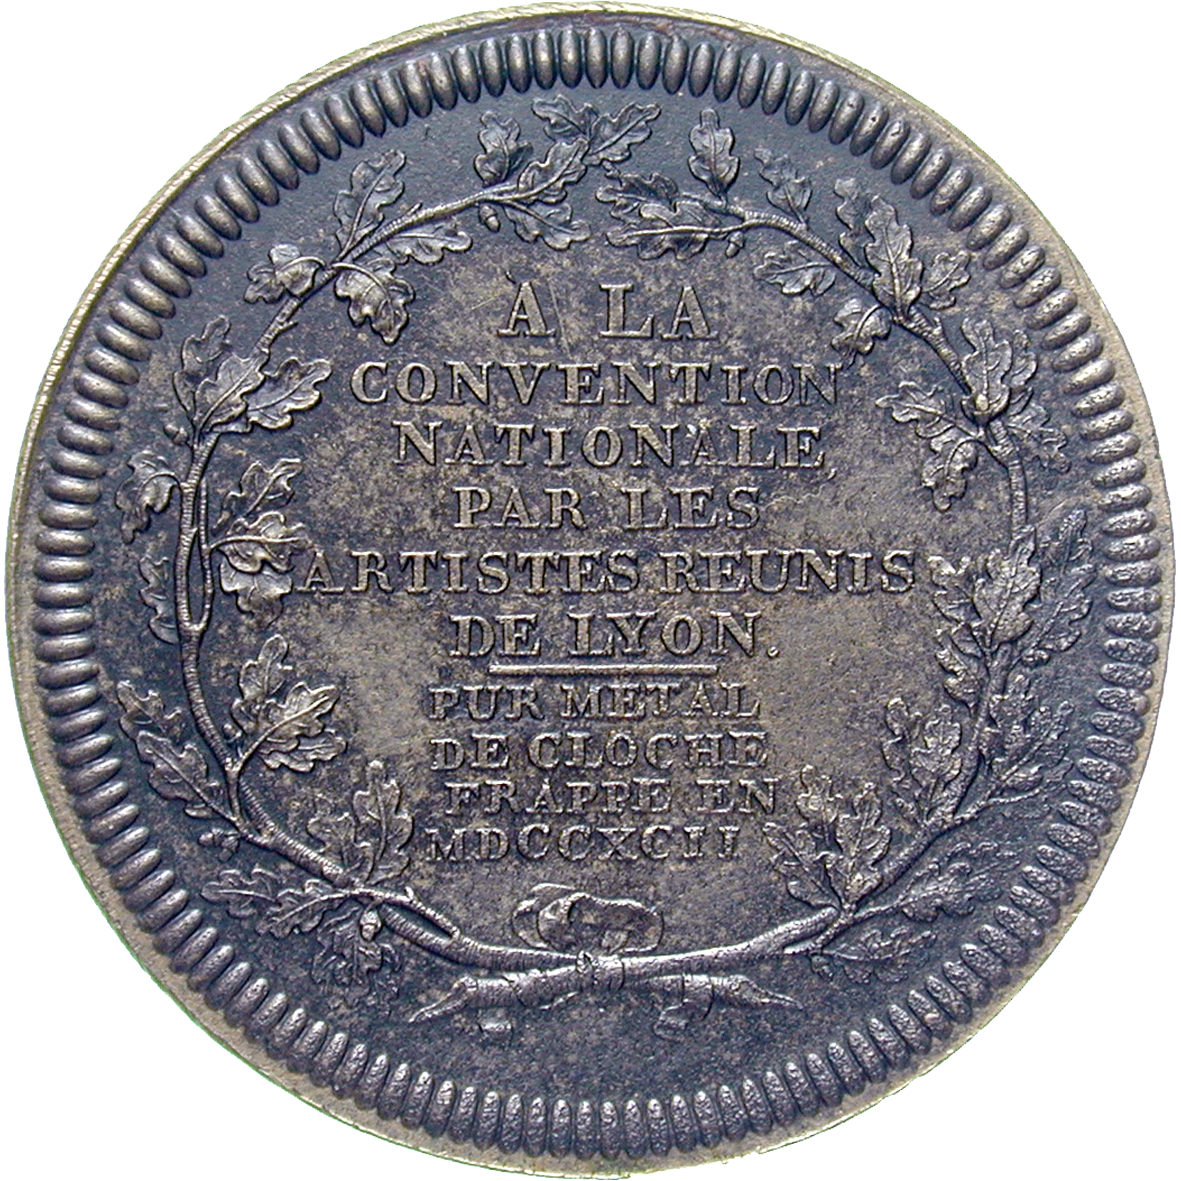 Republic of France, National Convention, Pattern coin, Year 1 of the Republic (reverse)